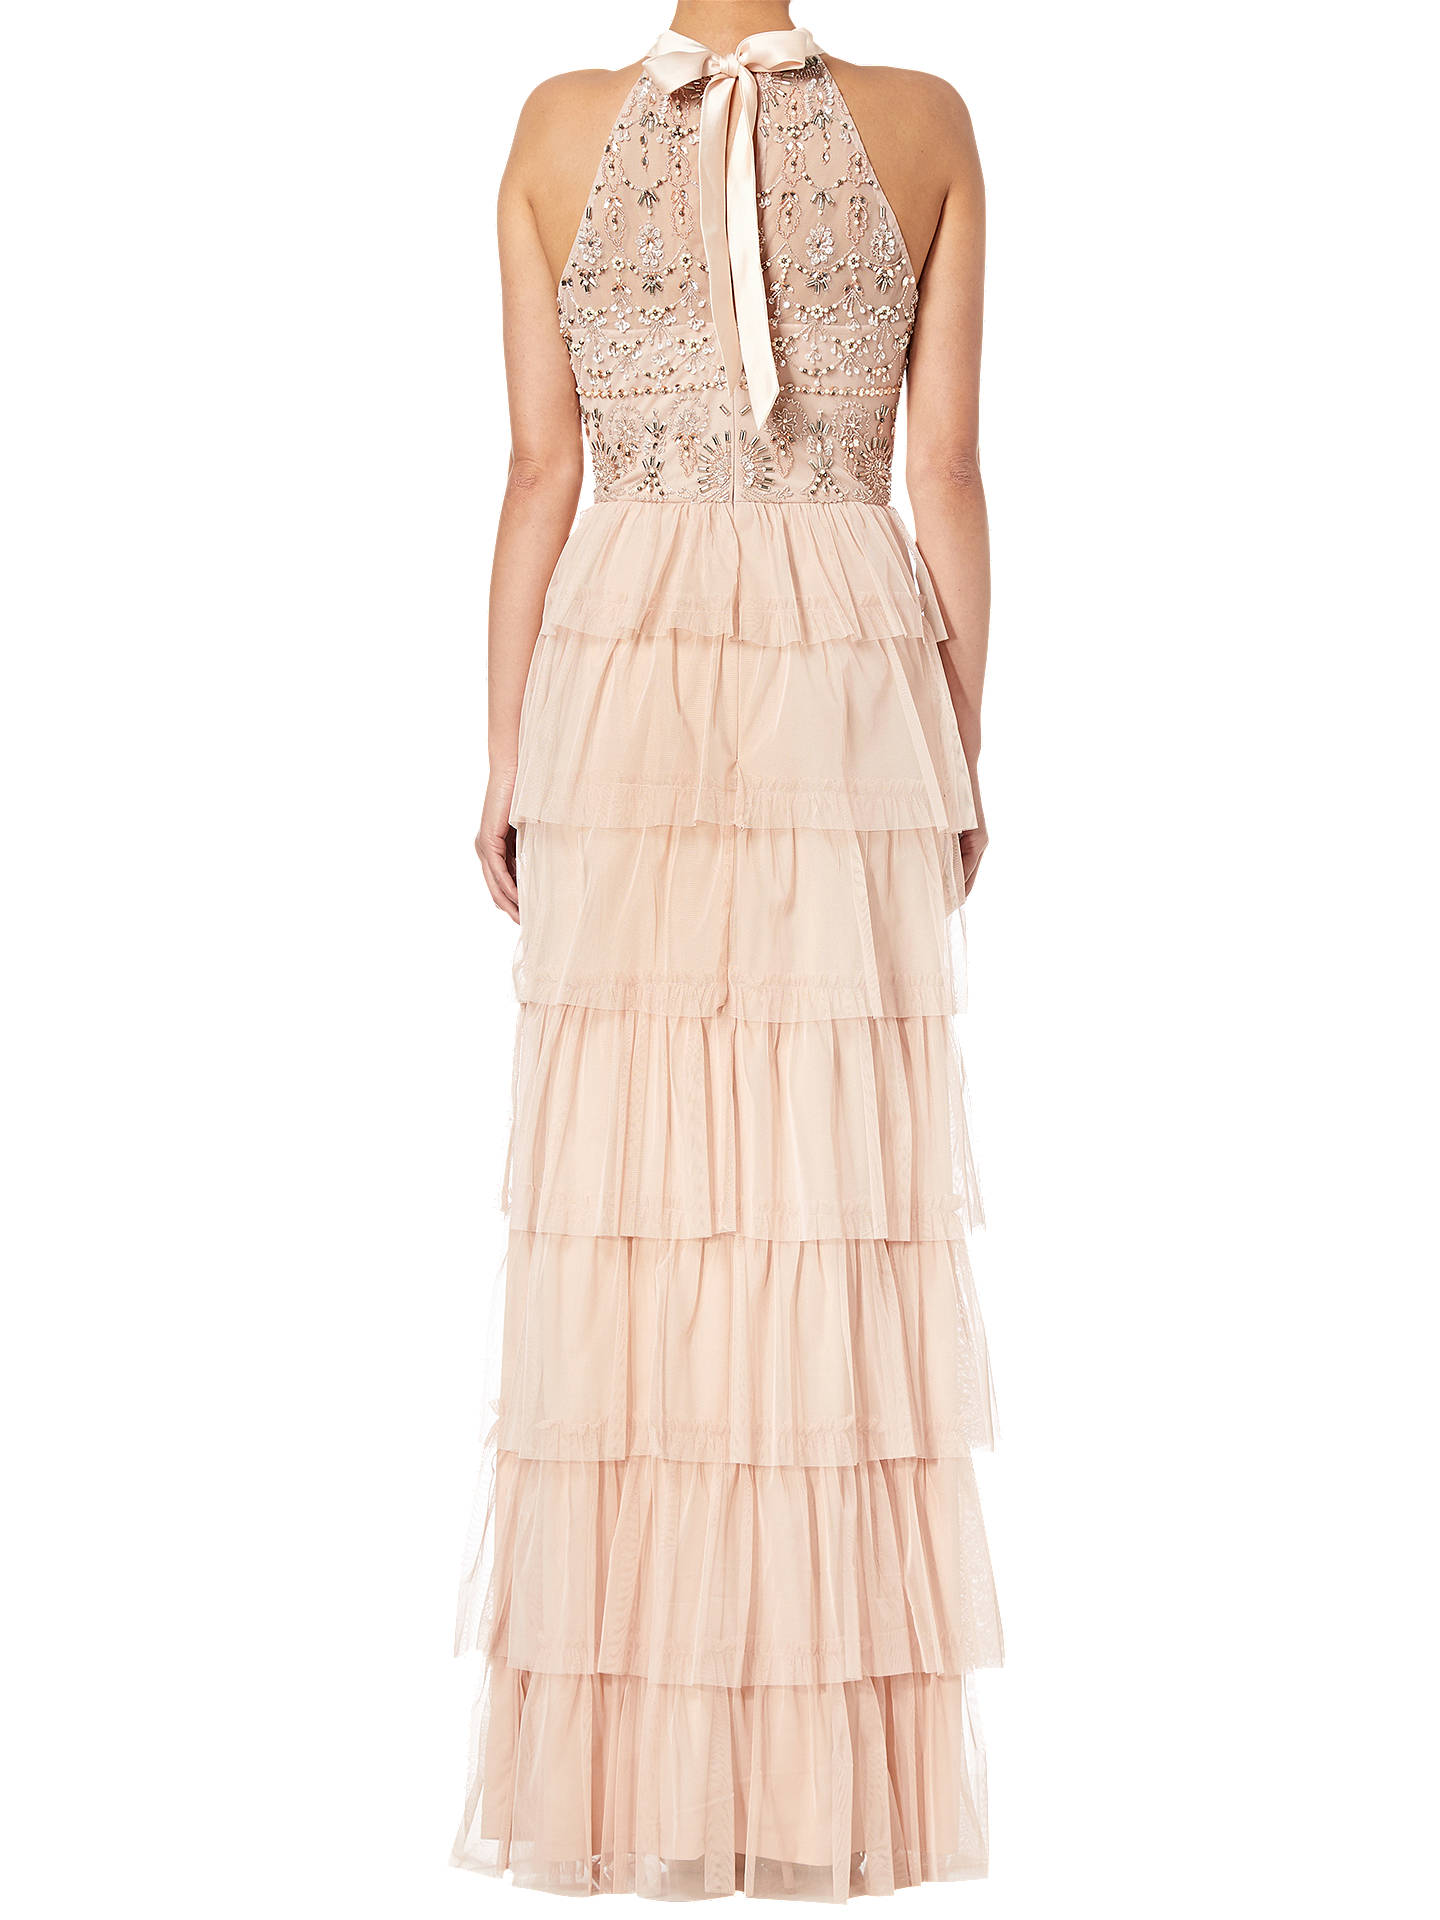 BuyAdrianna Papell Beaded Tiered Skirt Dress, Blush, 6 Online at johnlewis.com